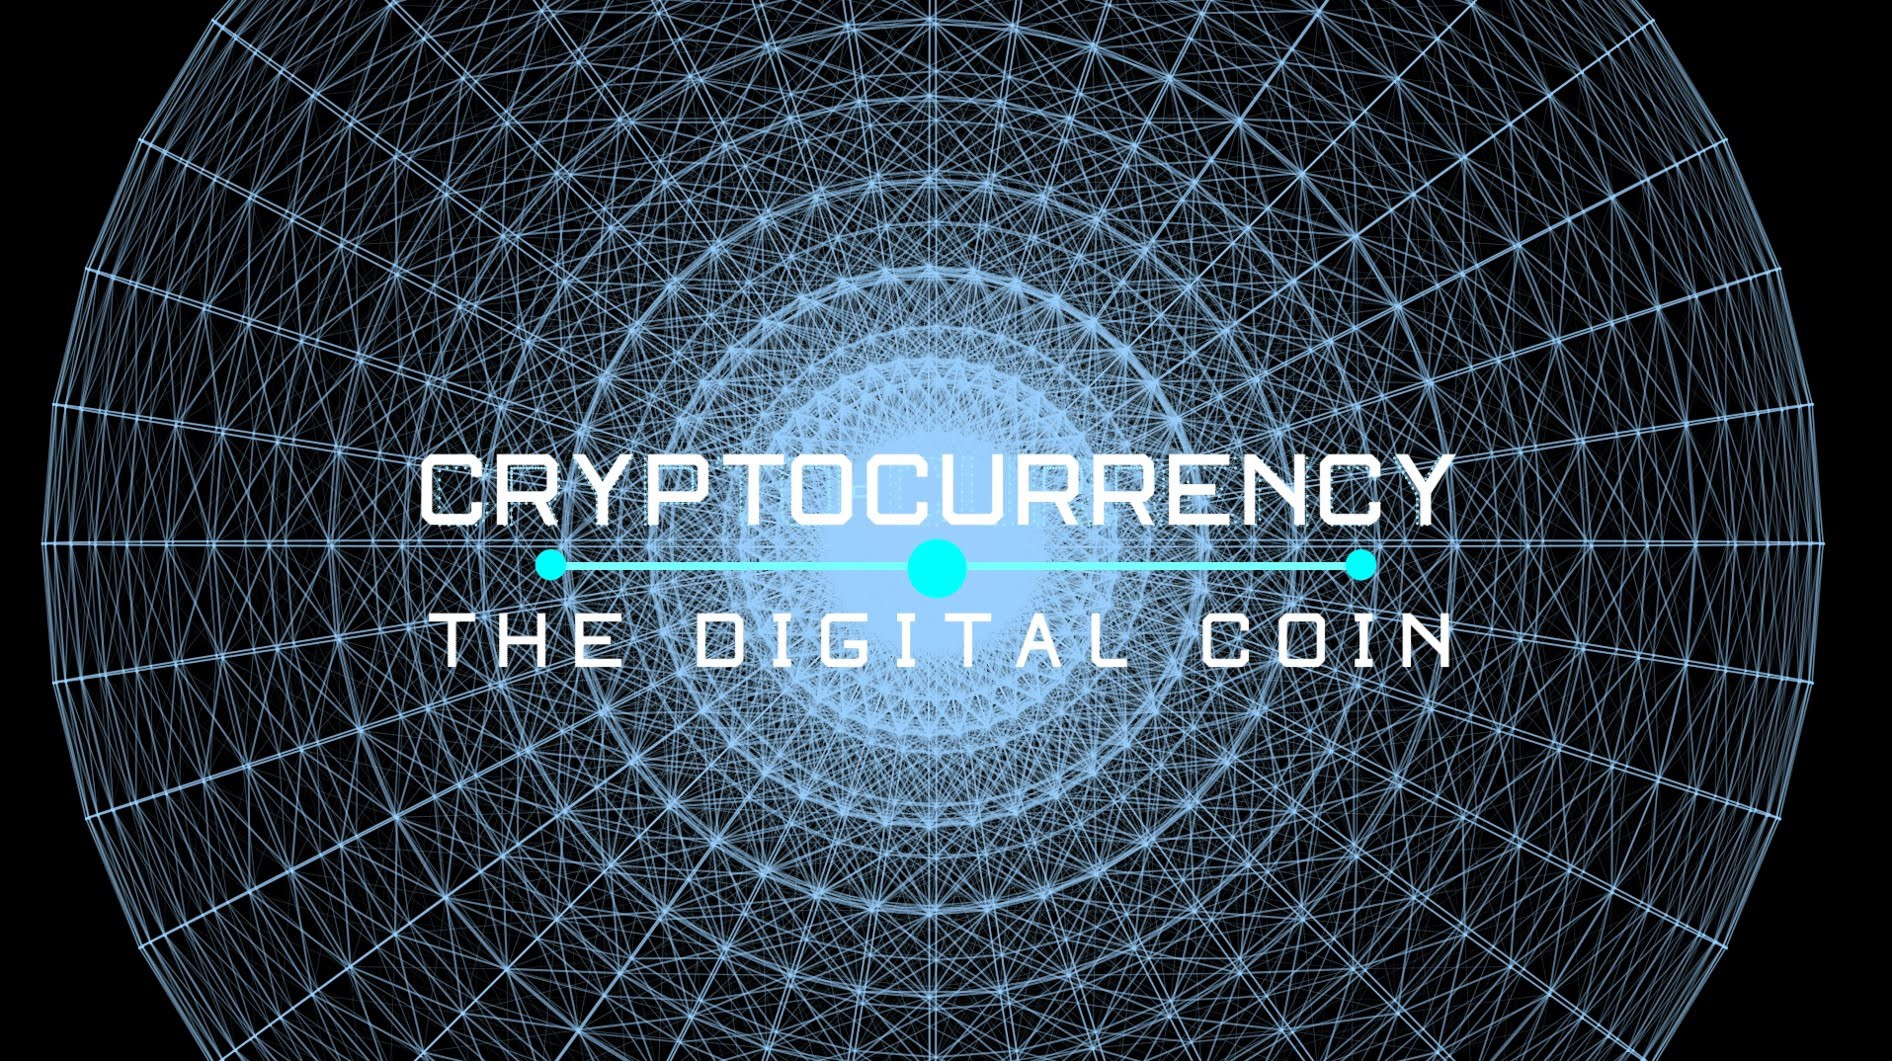 /bitcoin-ethereum-blockchain-tokens-icos-why-should-anyone-care-890b868cec06 feature image